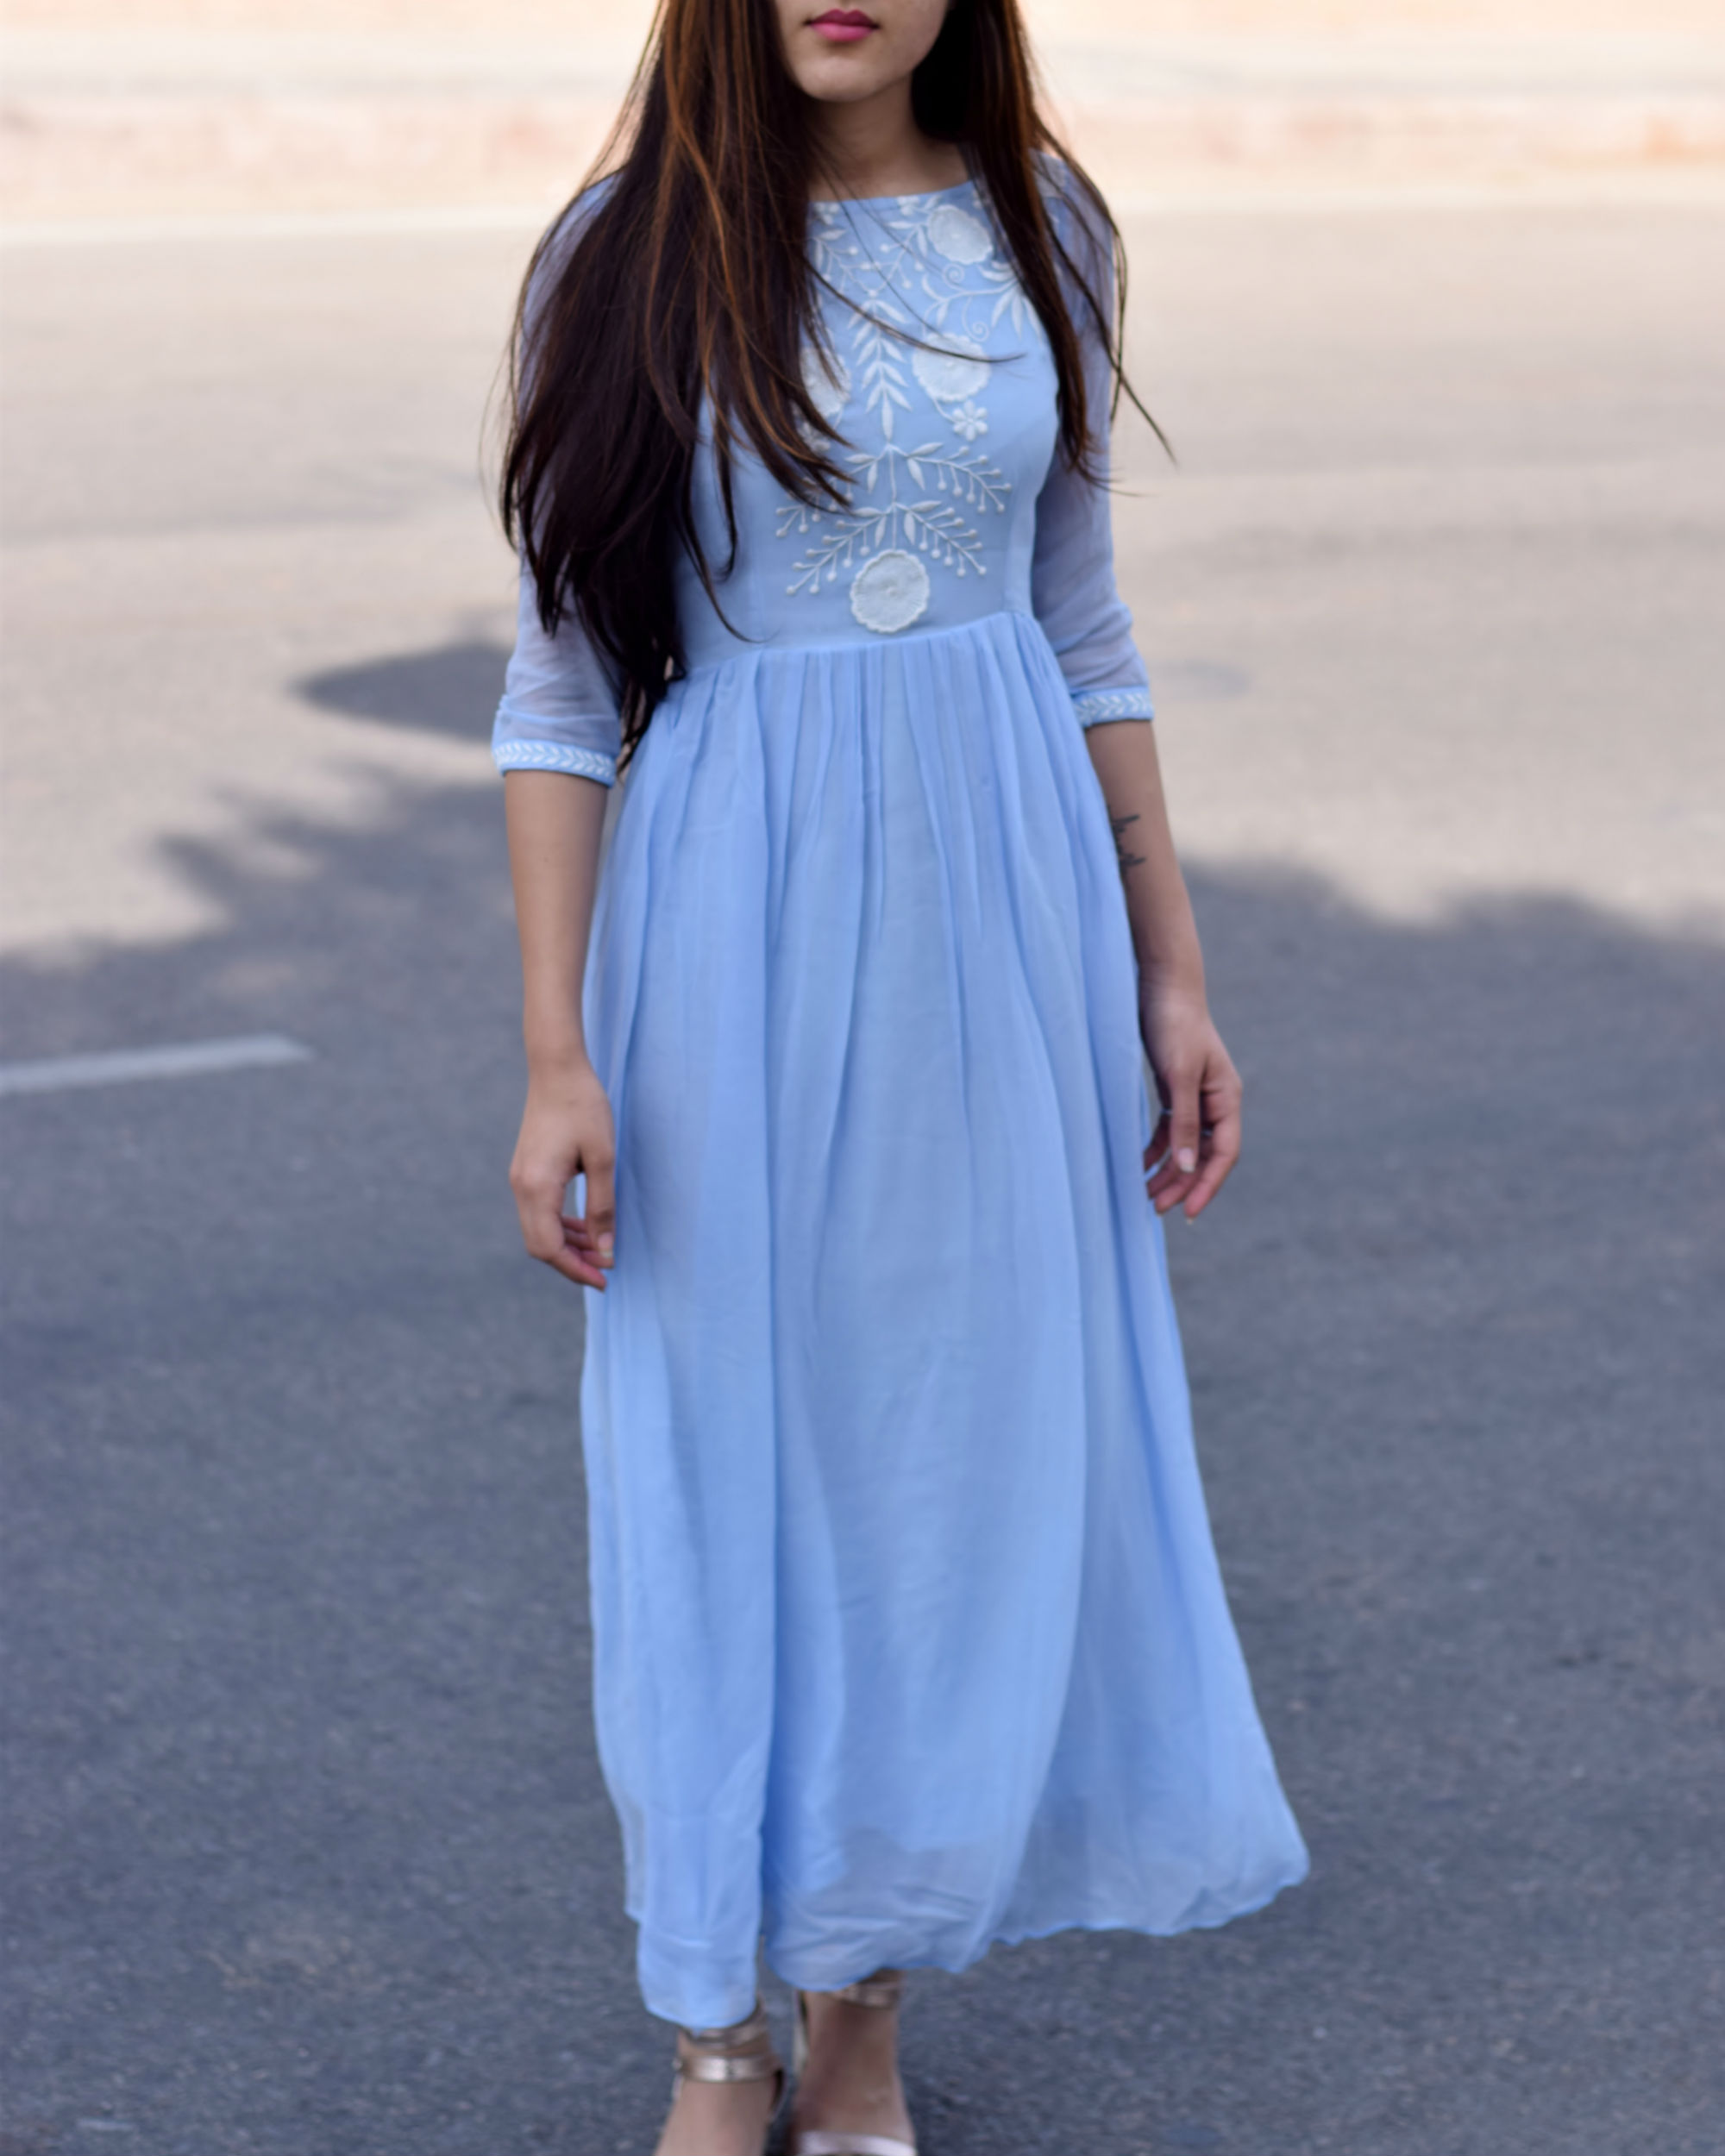 Skies maxi dress